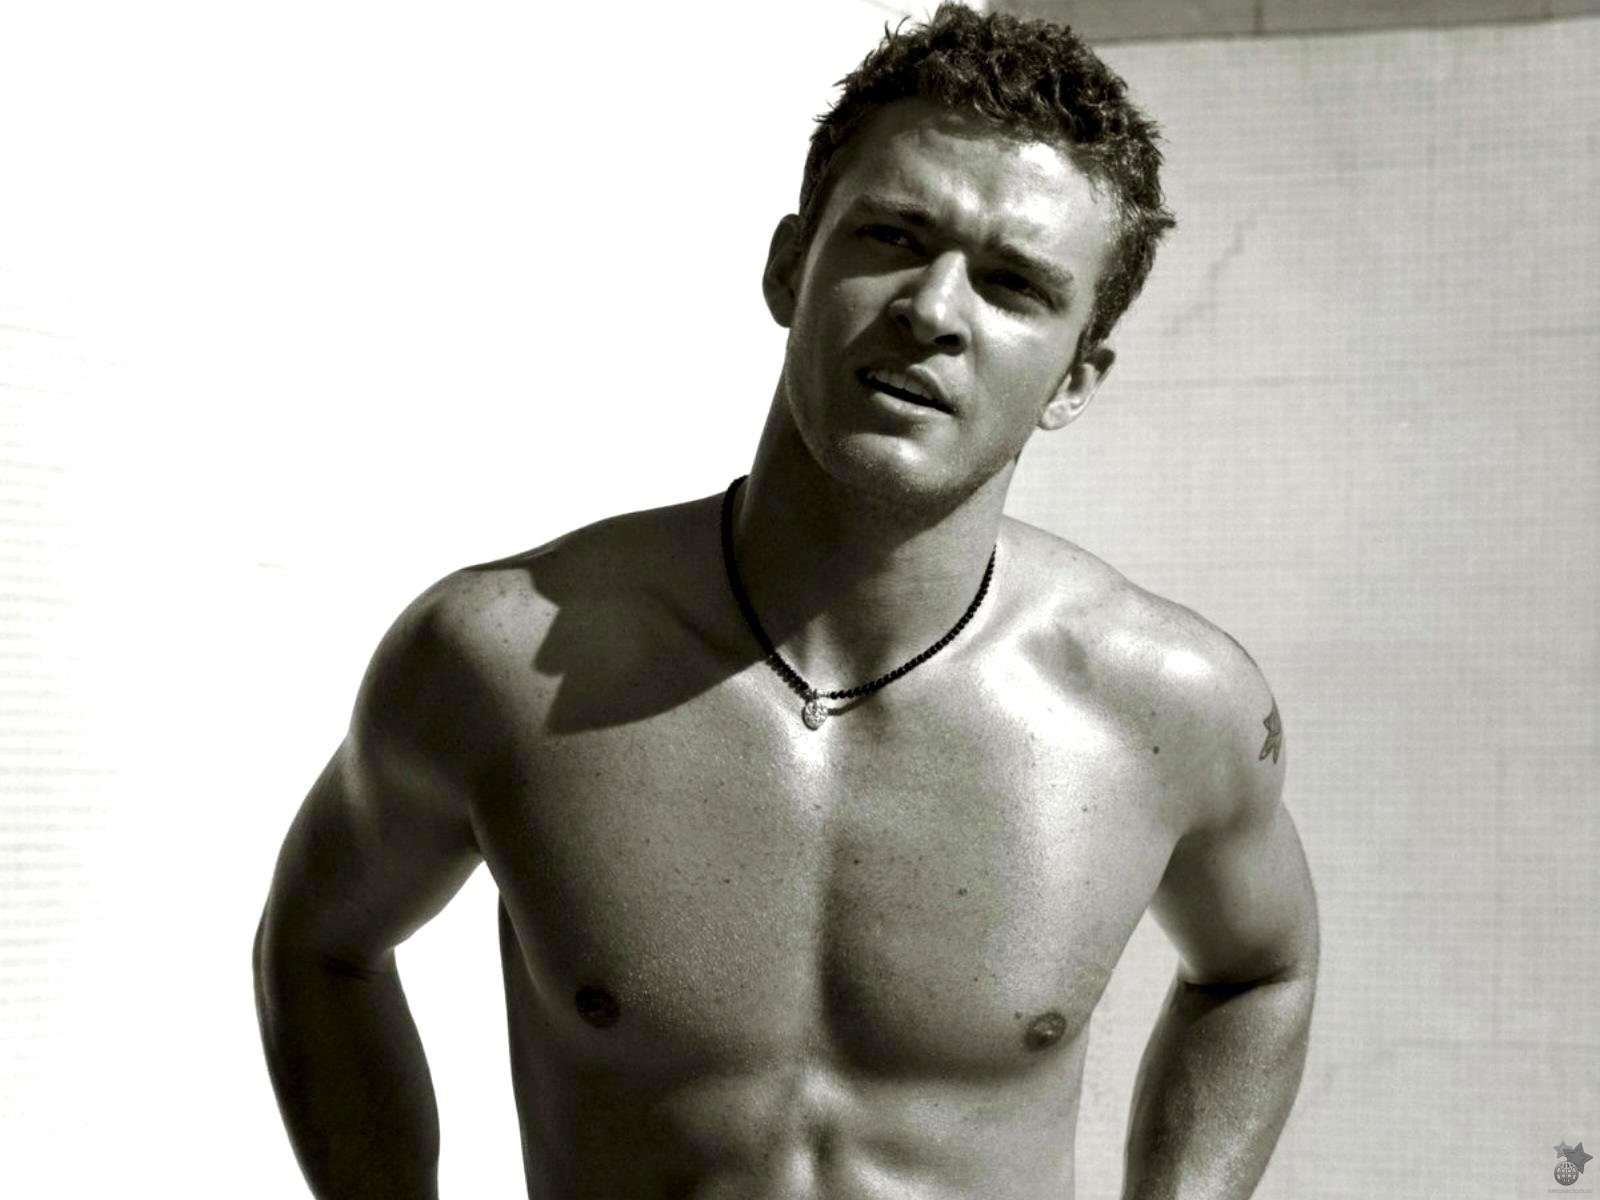 Remarkable, Justin timberlake shirtless friends with benefits there's nothing